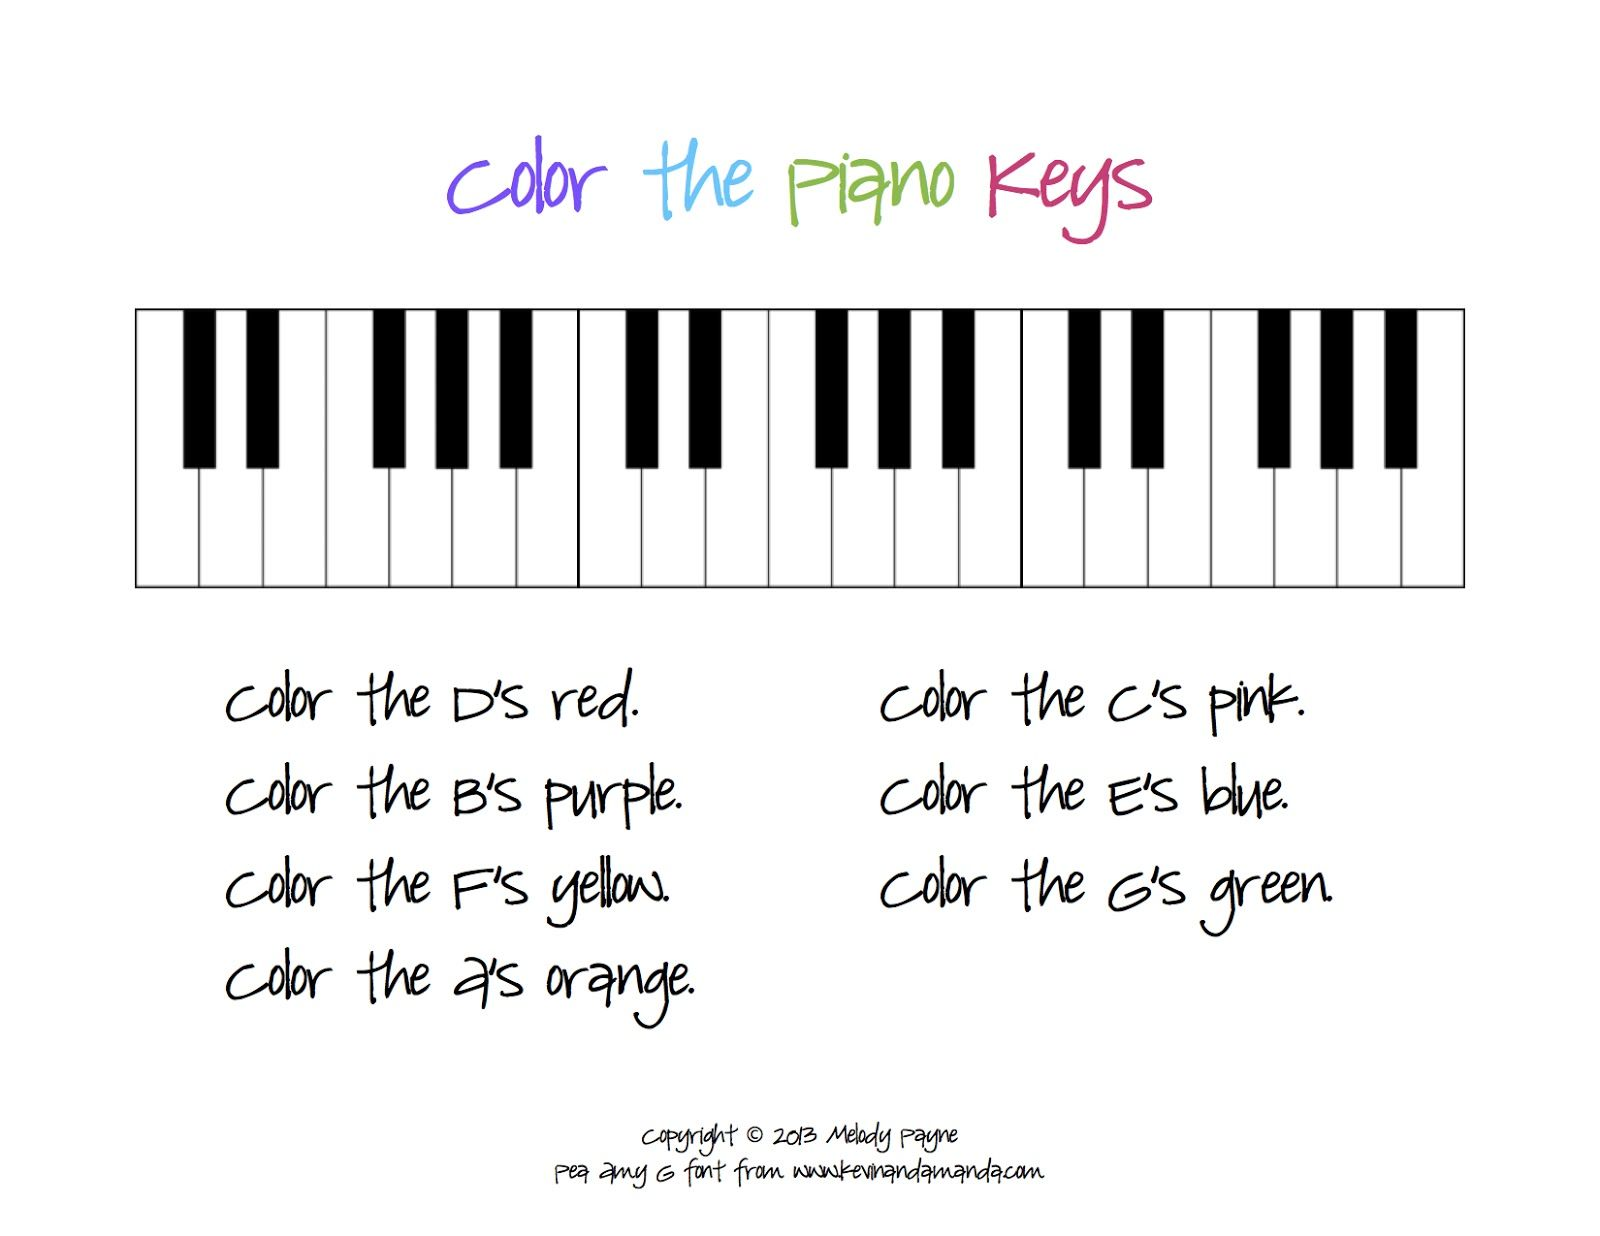 Color the Piano Keys Sheet Piano keys Pianos and Key